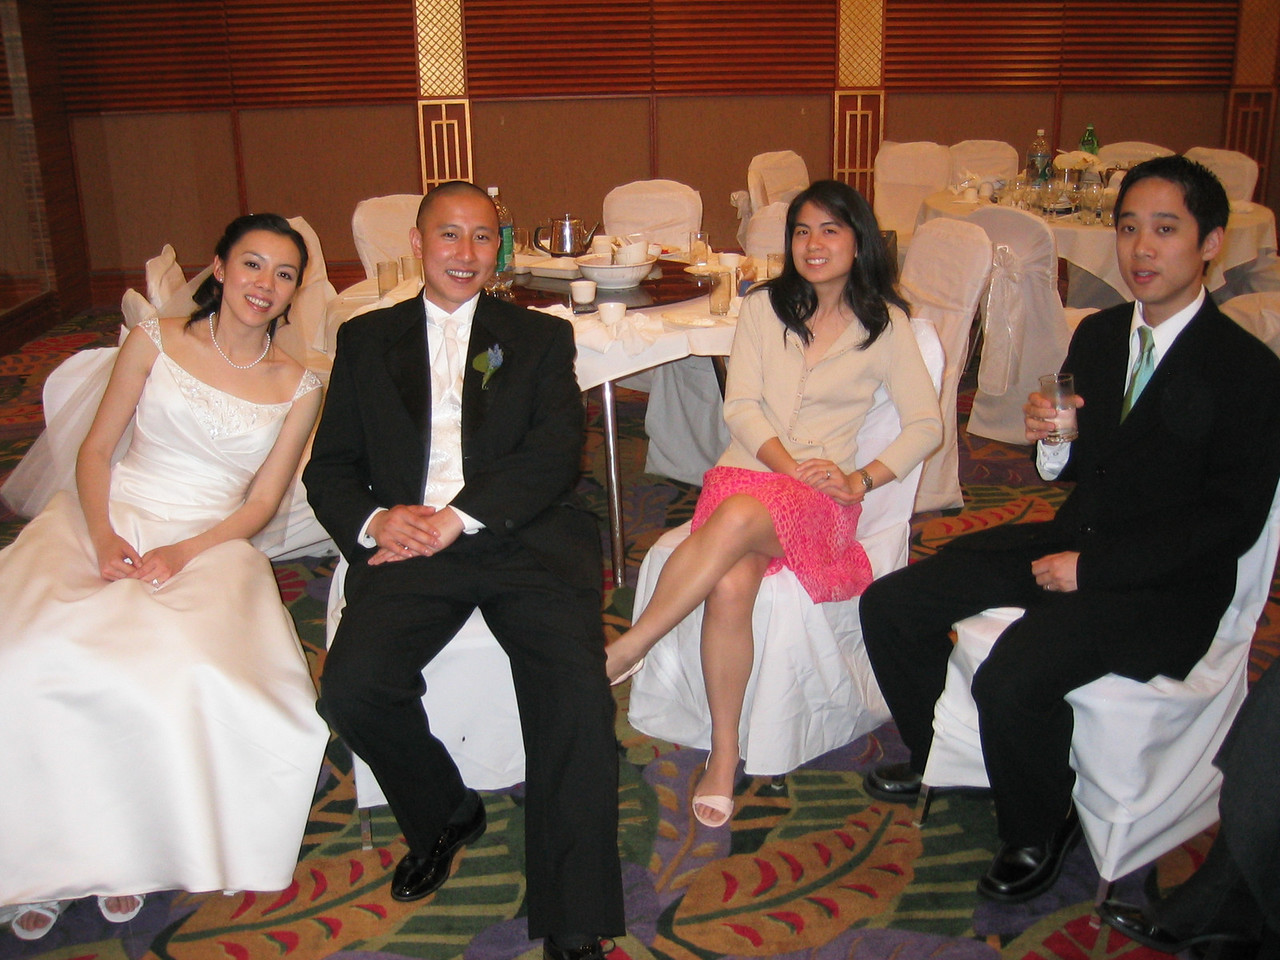 2005 04 23 Saturday - Pooped Amy & Mike Lee and Audrey & Andy Wu 2 @ Mike & Amy Lee's wedding